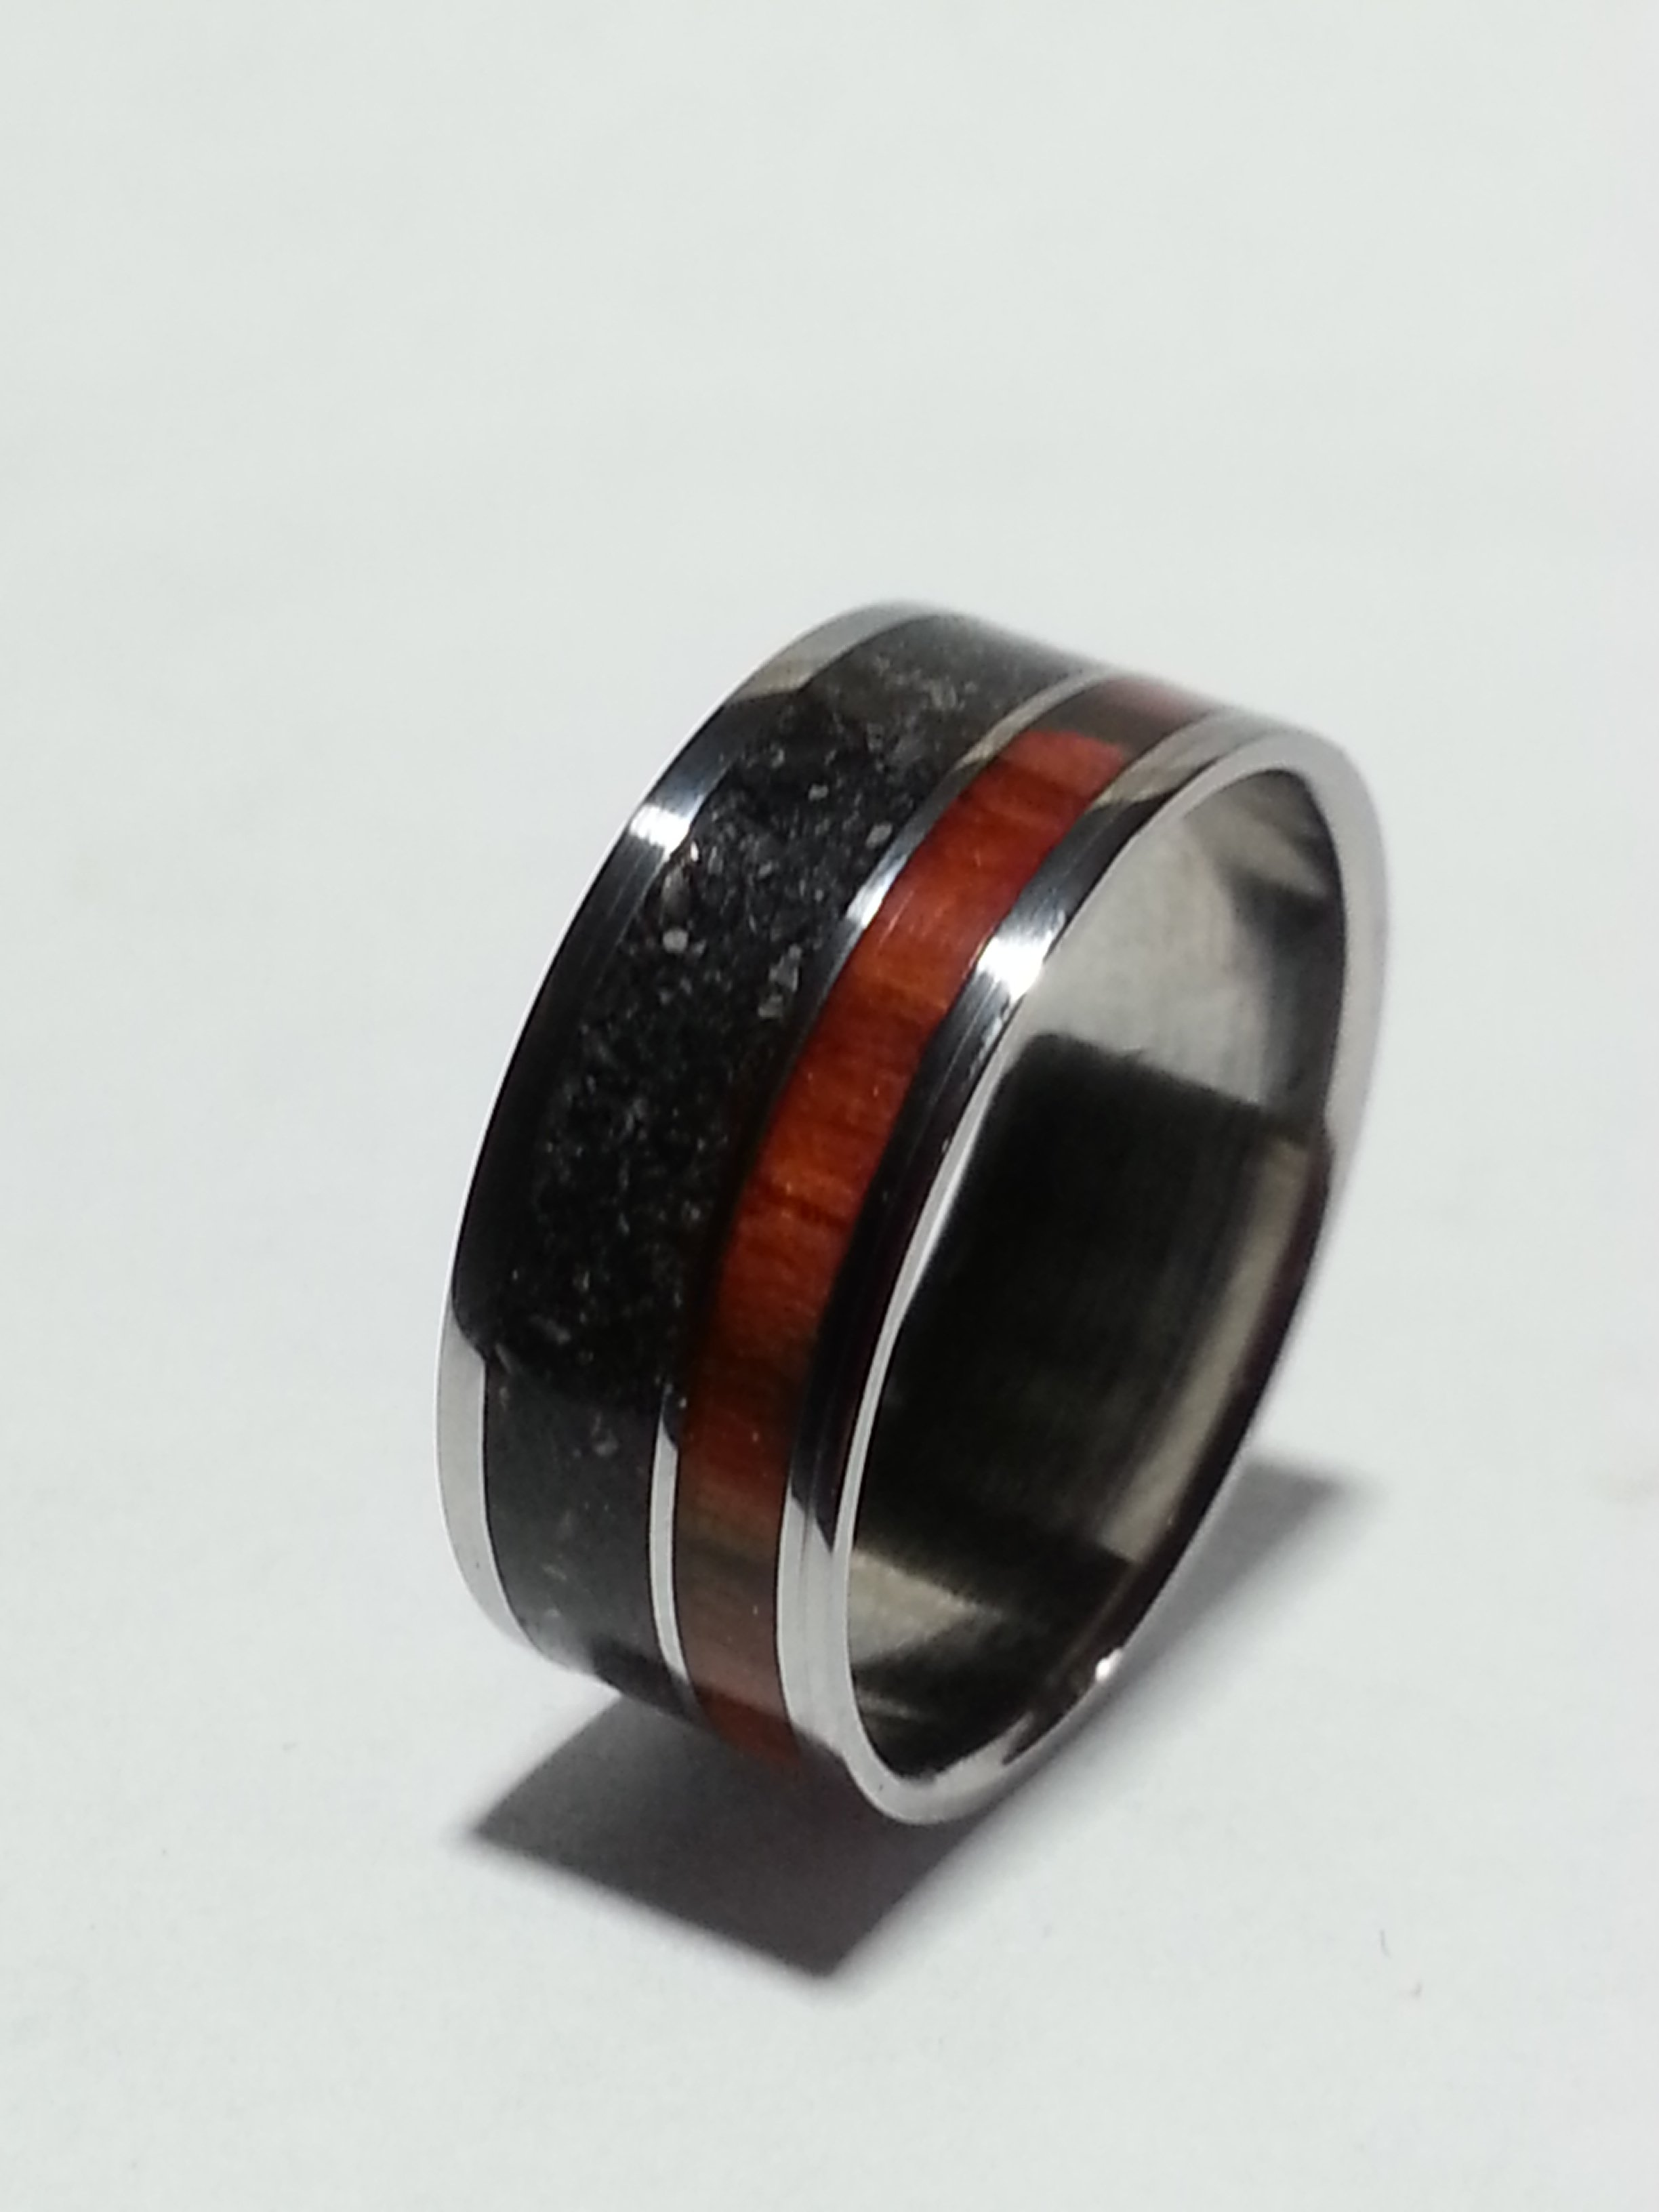 Stainless Steel Ring + Cremation Ashes + Rosewood